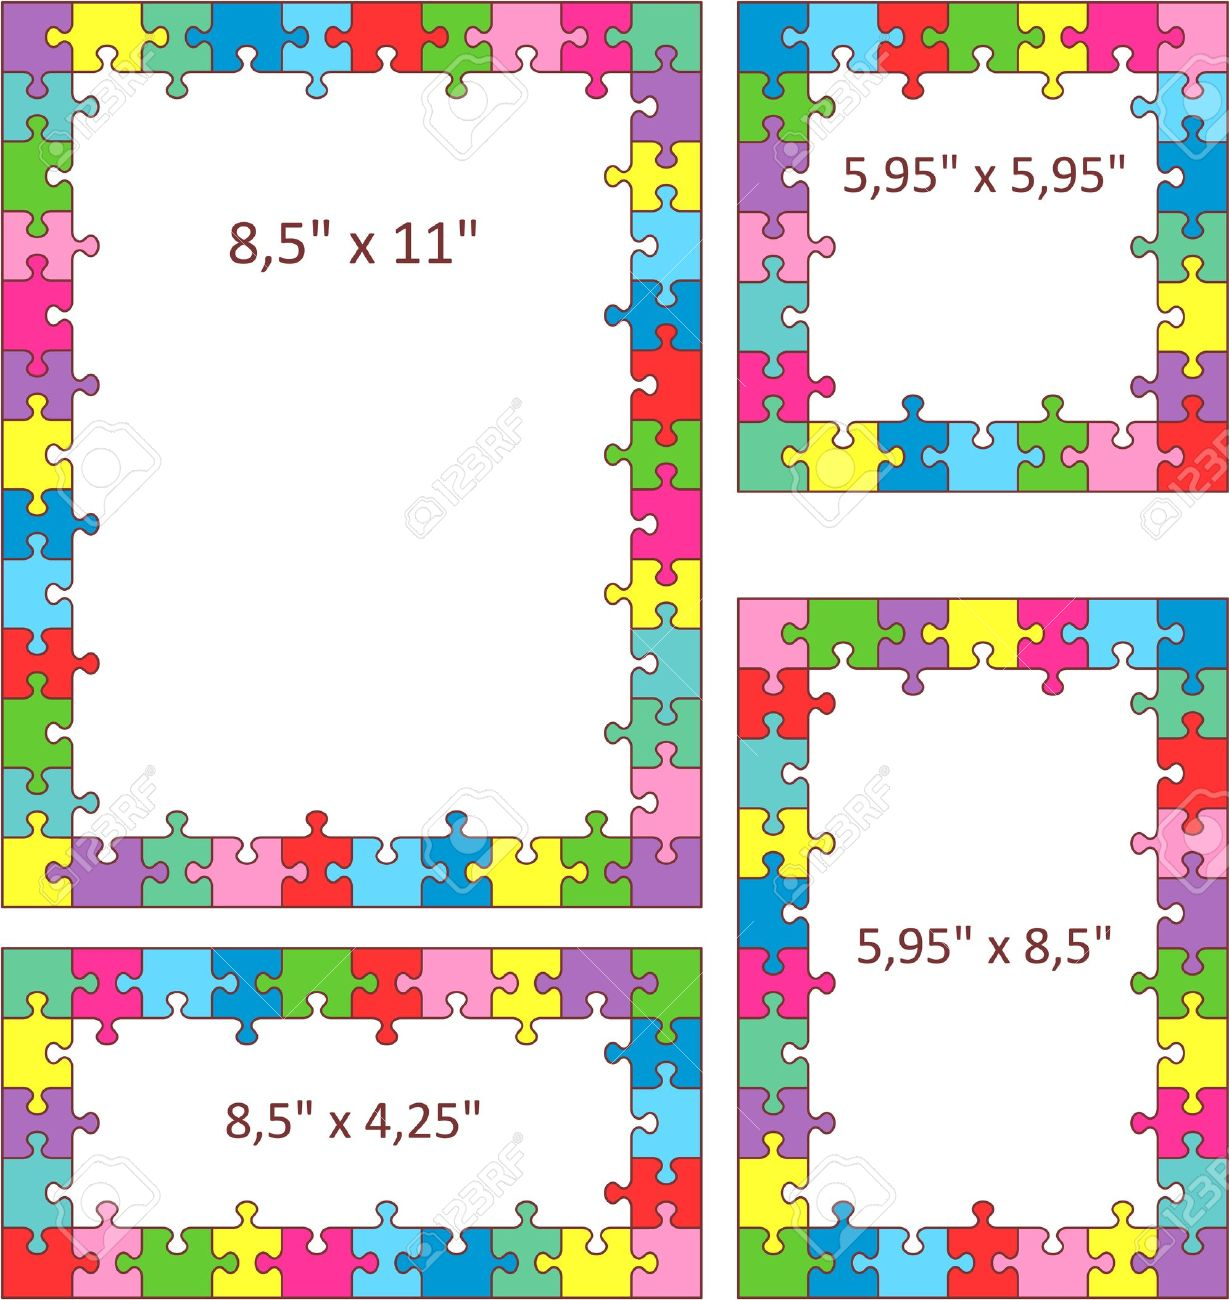 multicolor jigsaw puzzle frames borders of letter and other sizes stock vector 20295471